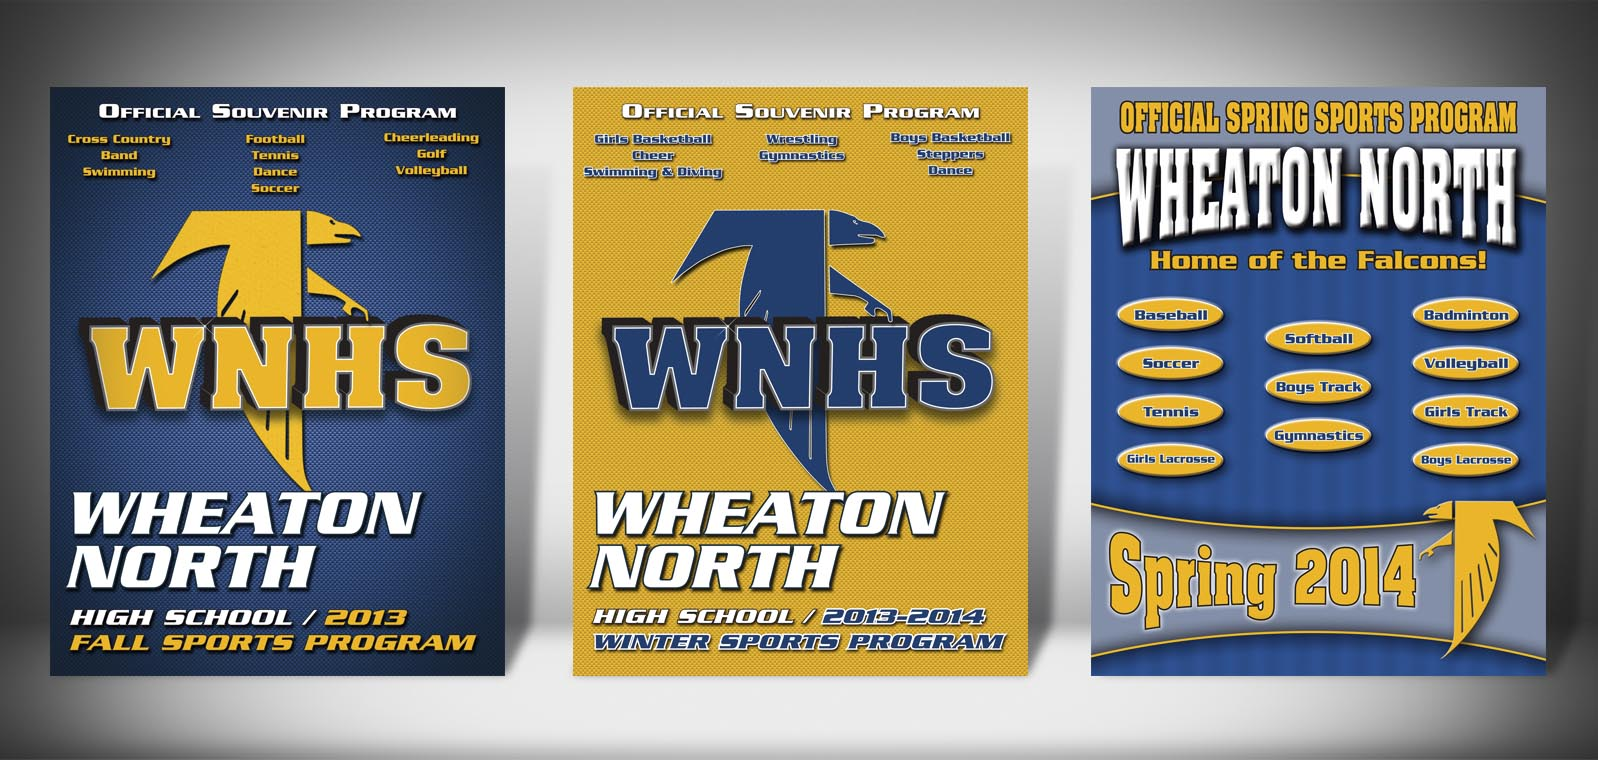 The Front Covers for the 2013-2014 Wheaton North High School Sports Program Graphic Design by Roselle Graphic Designer Controlled Color, Inc.